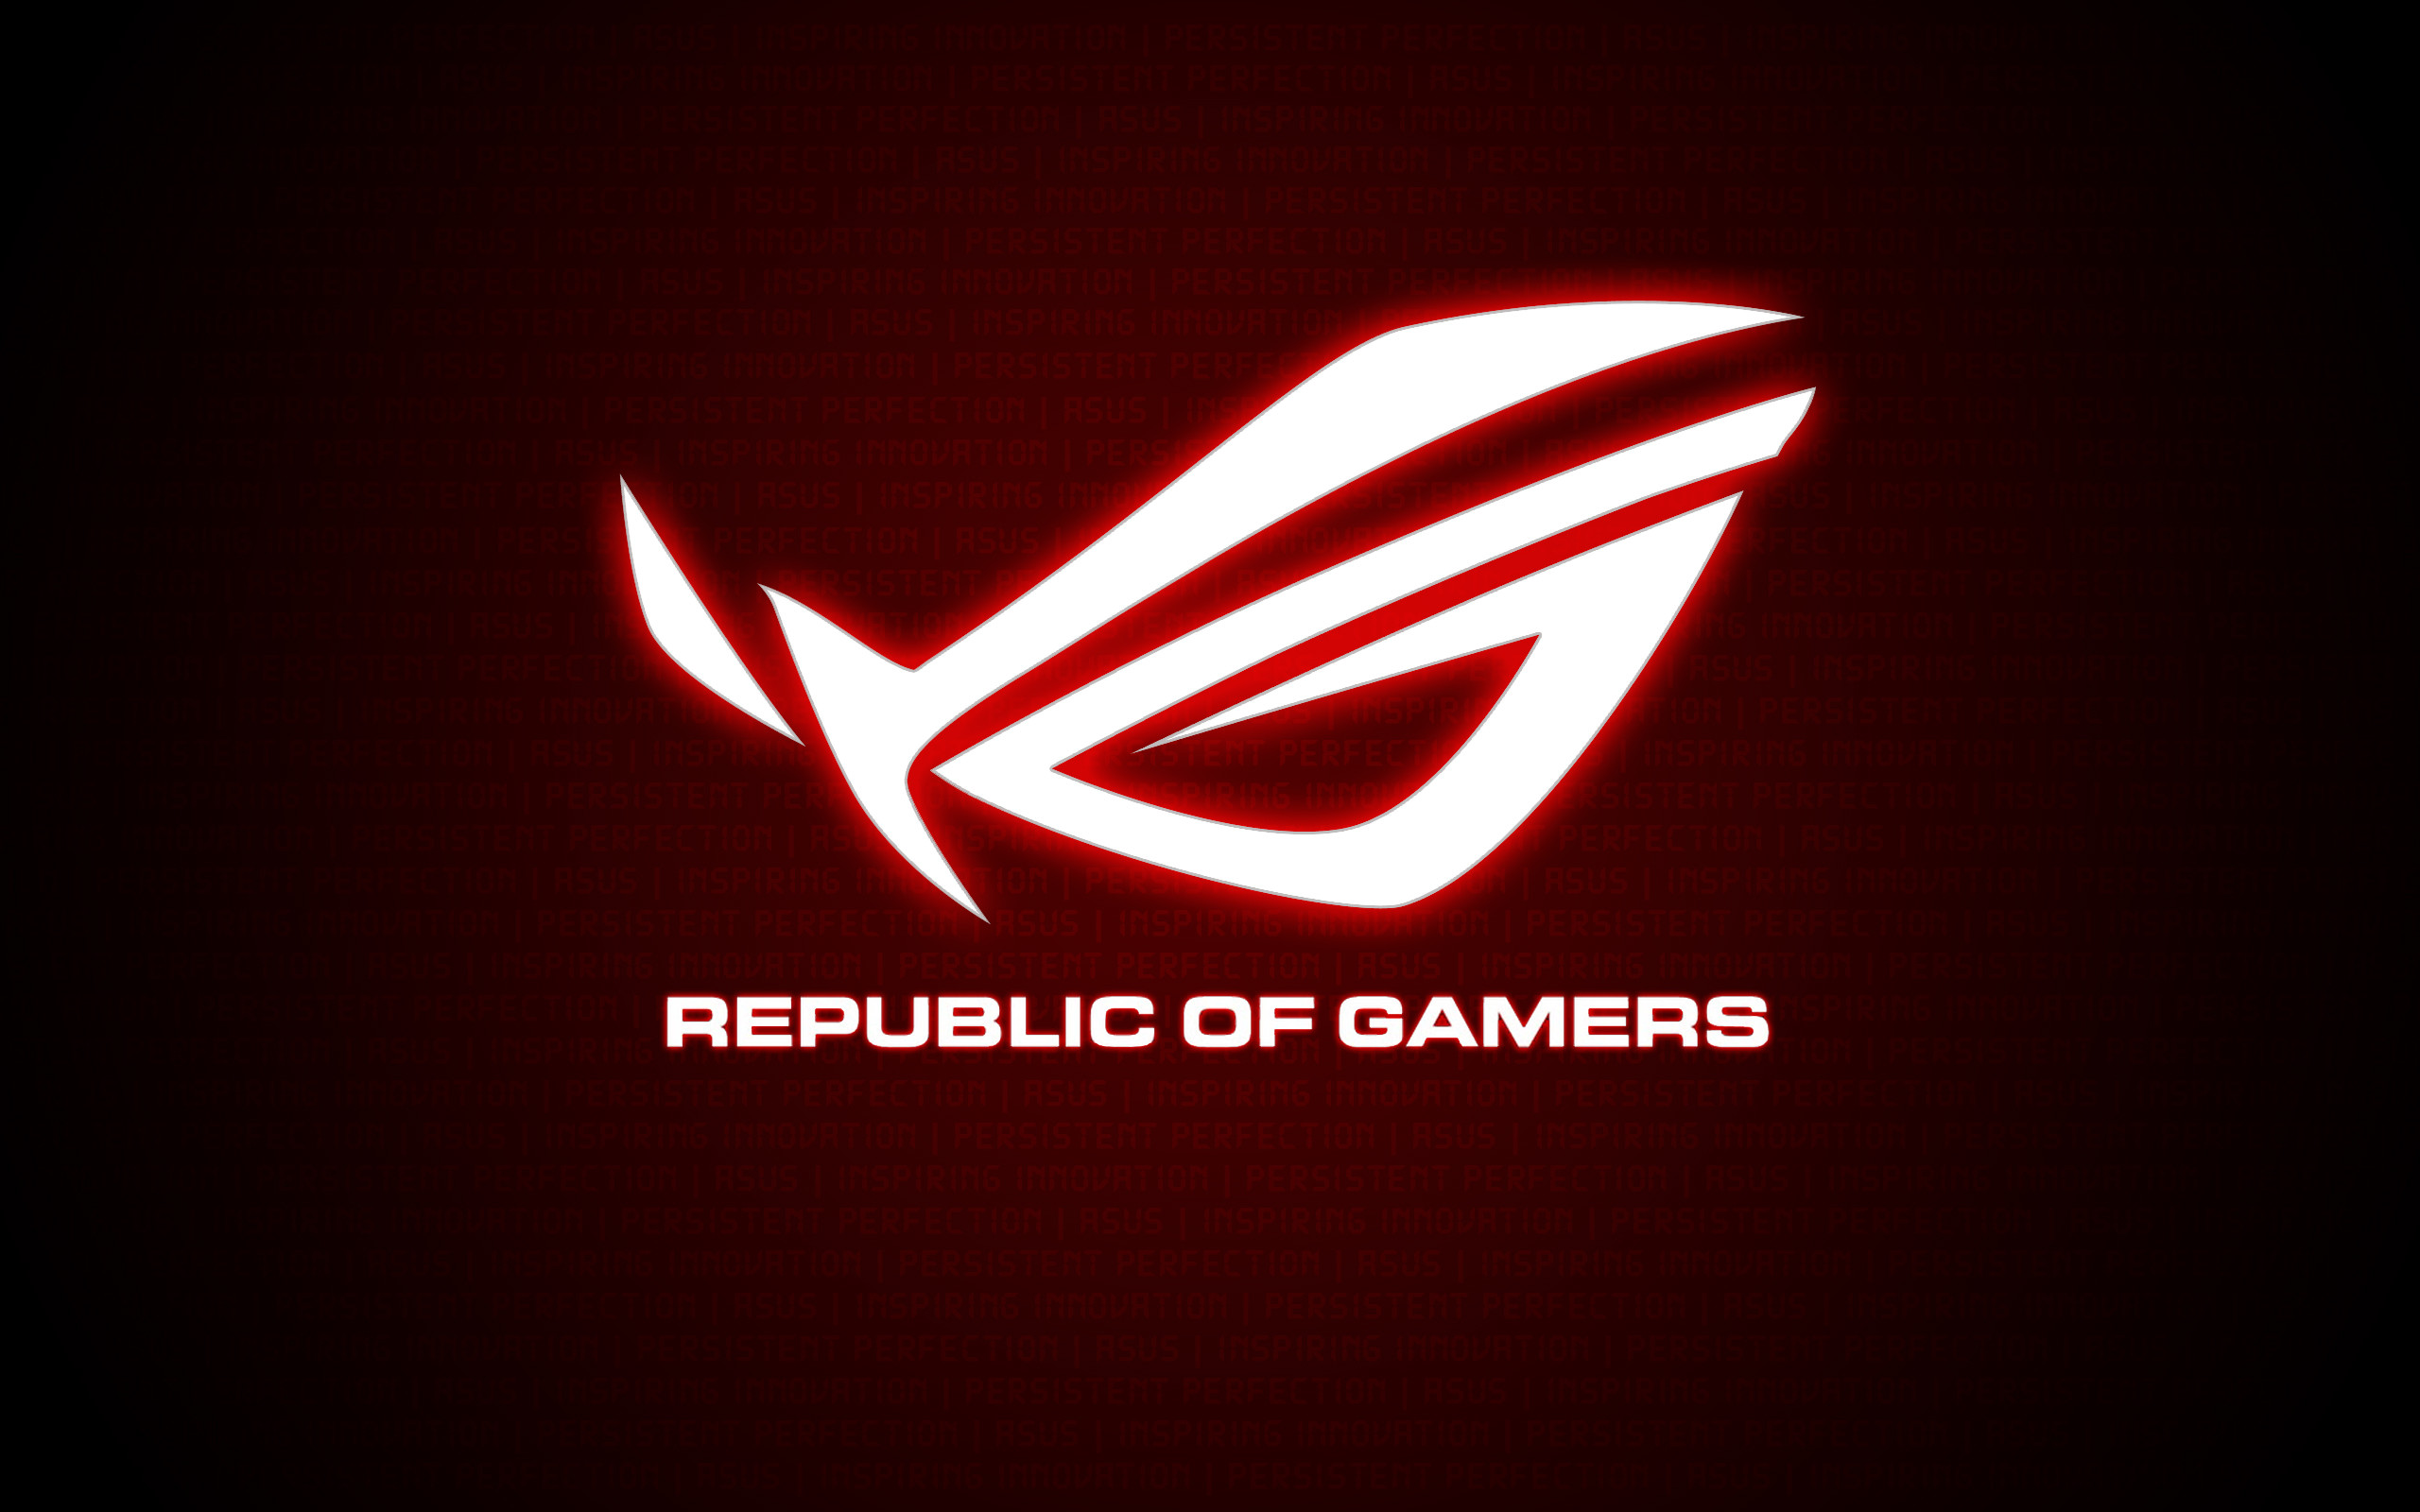 wallpaper.wiki-ROG-Heart-of-the-ASUS-Philosophy-